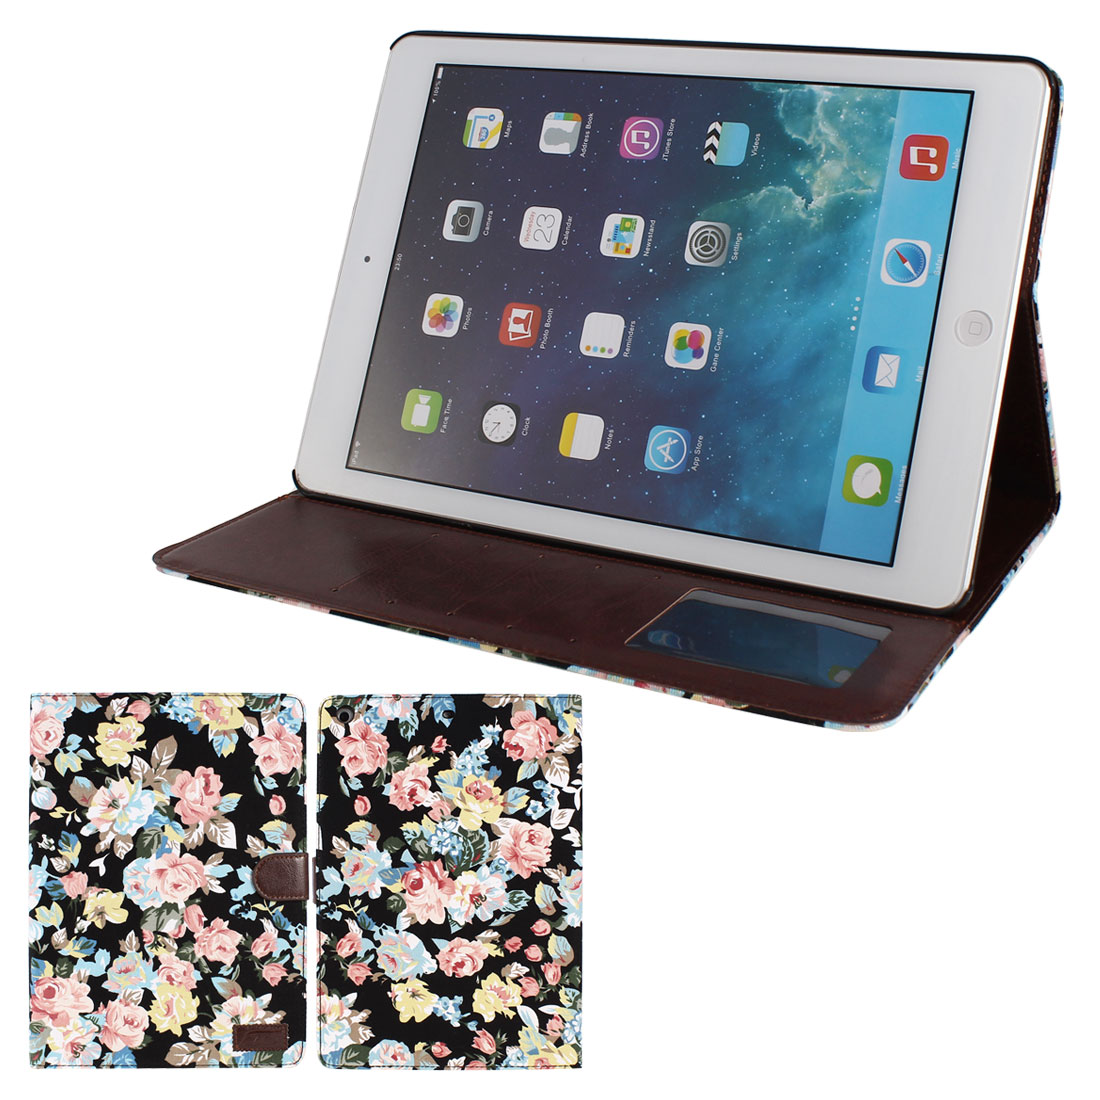 Floral Pattern Magnetic Closure Flip Folio Stand Case Cover for iPad Air 5